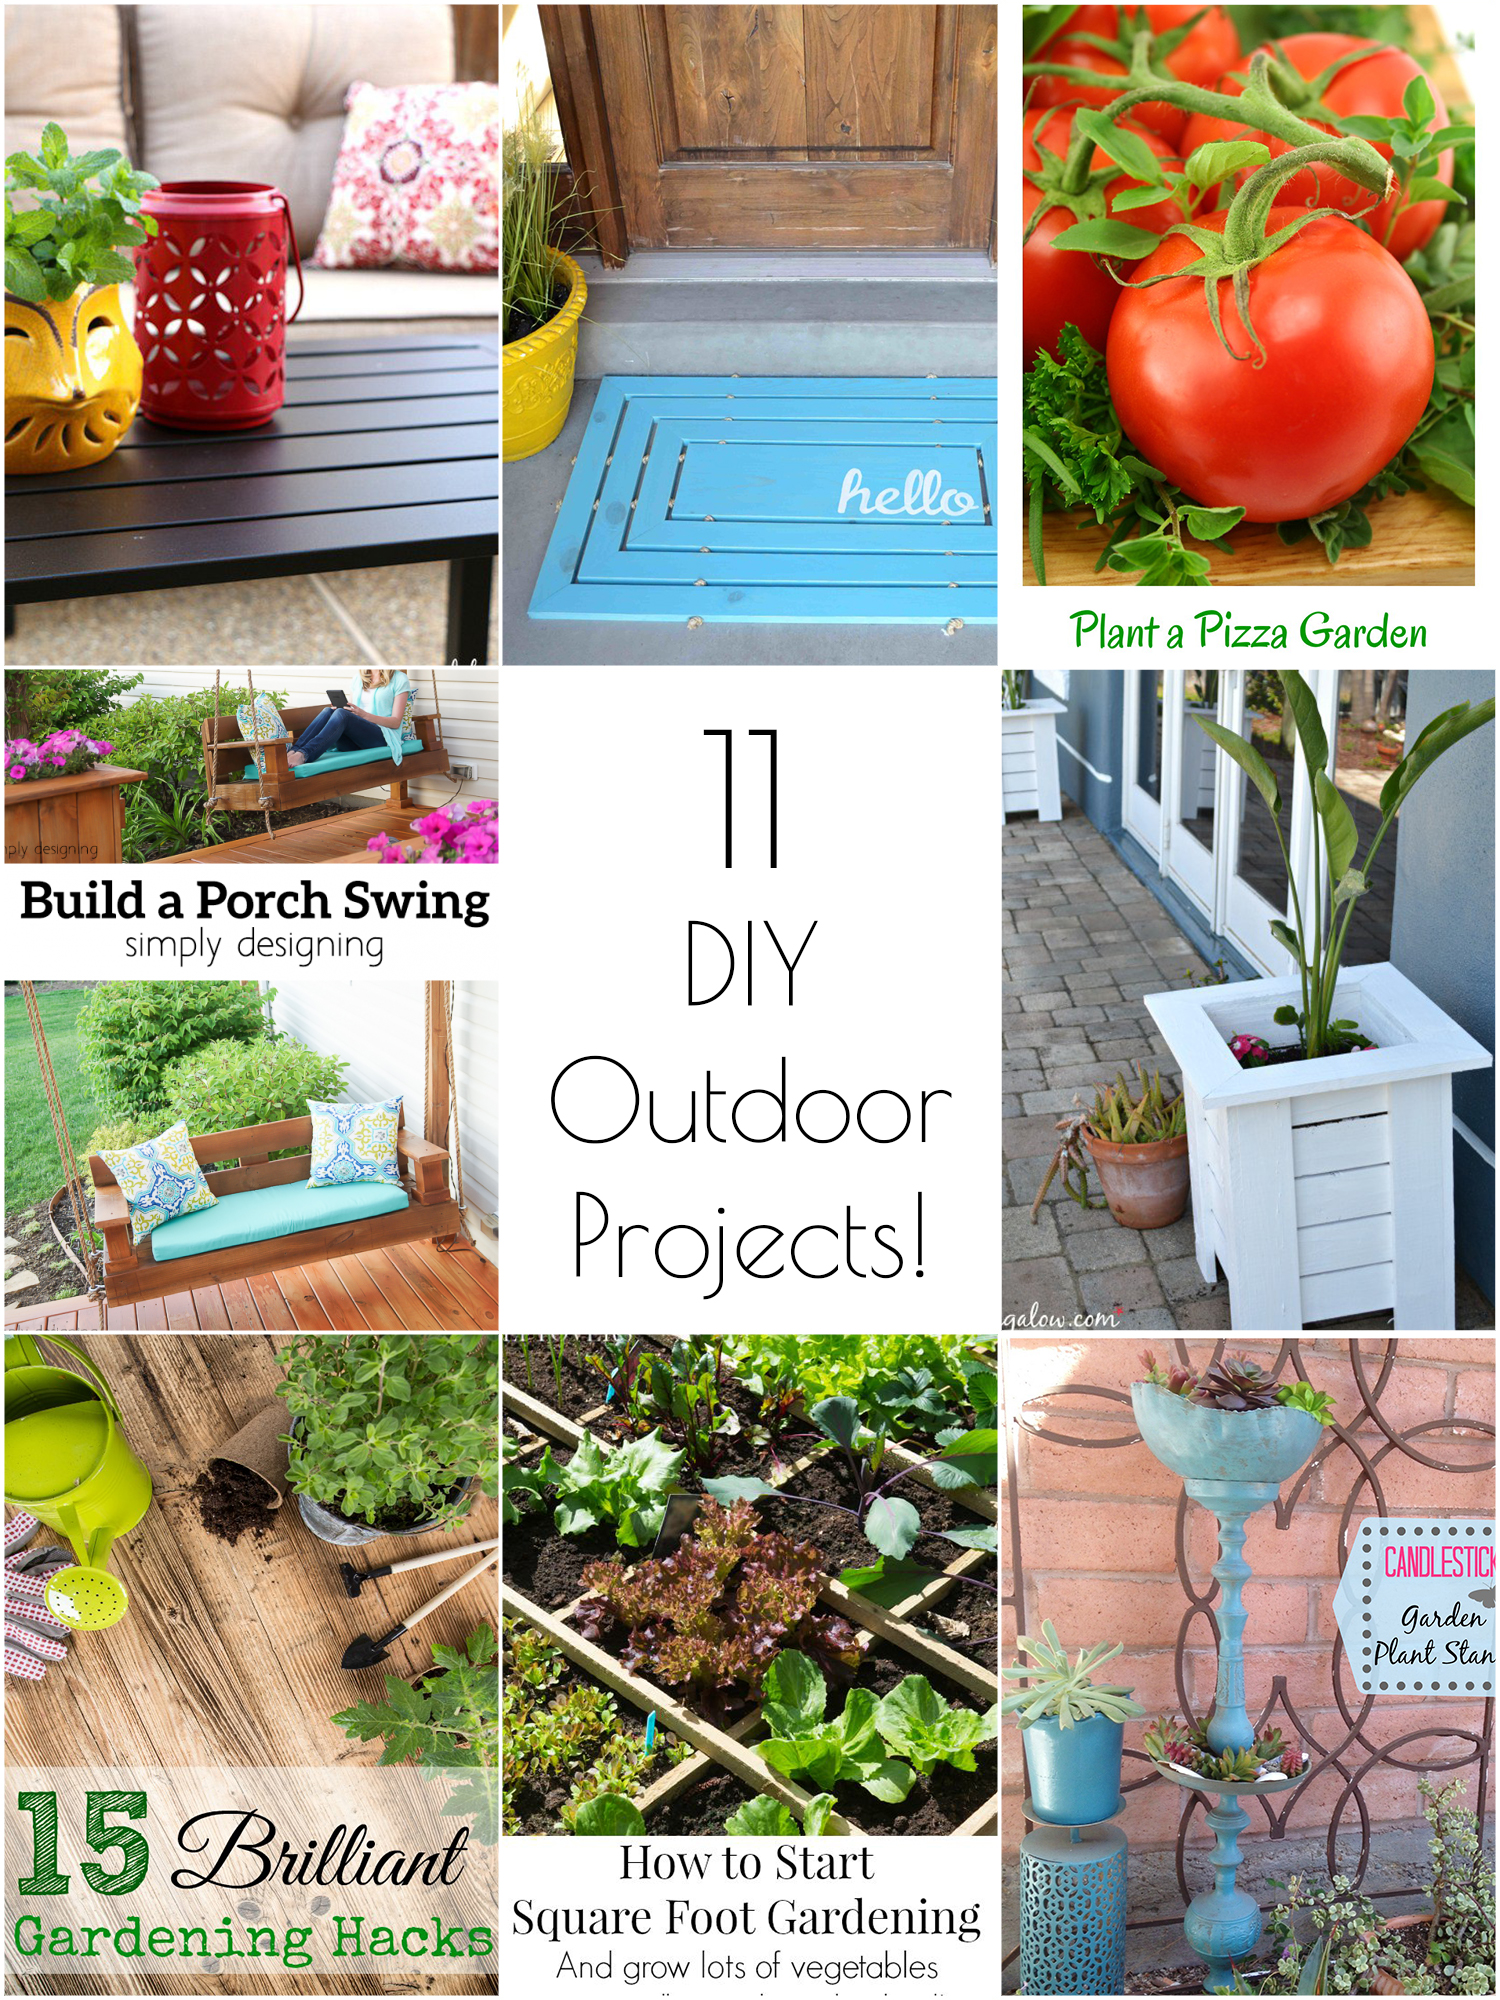 11 amazing DIY outdoor projects to try this spring